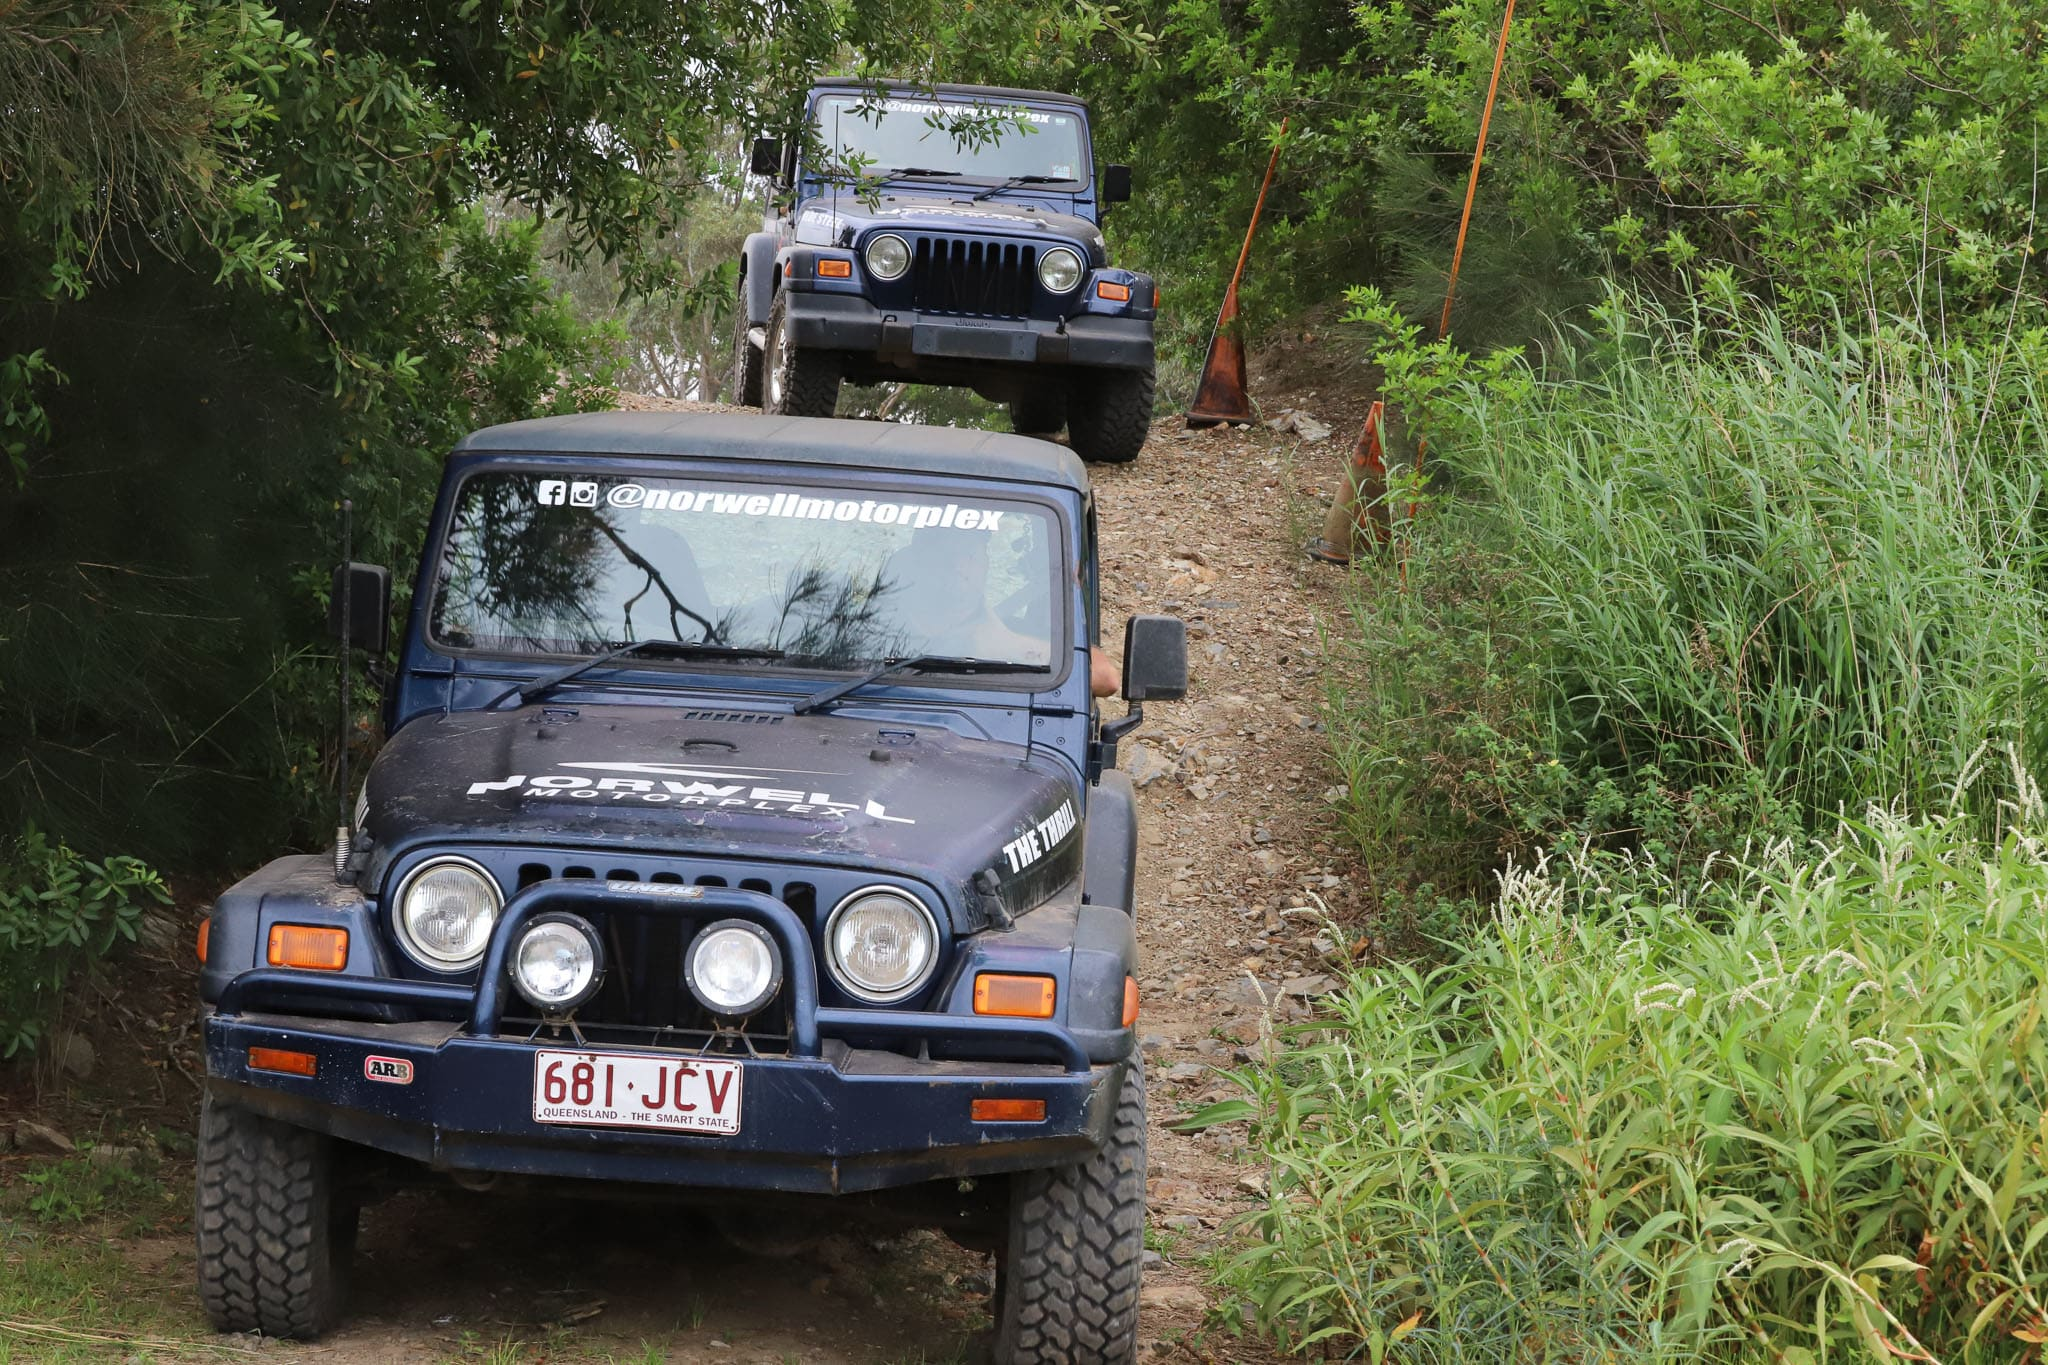 4x4 Jeep Off Road Experience, 30 Minutes - Norwell Motorplex, Gold Coast